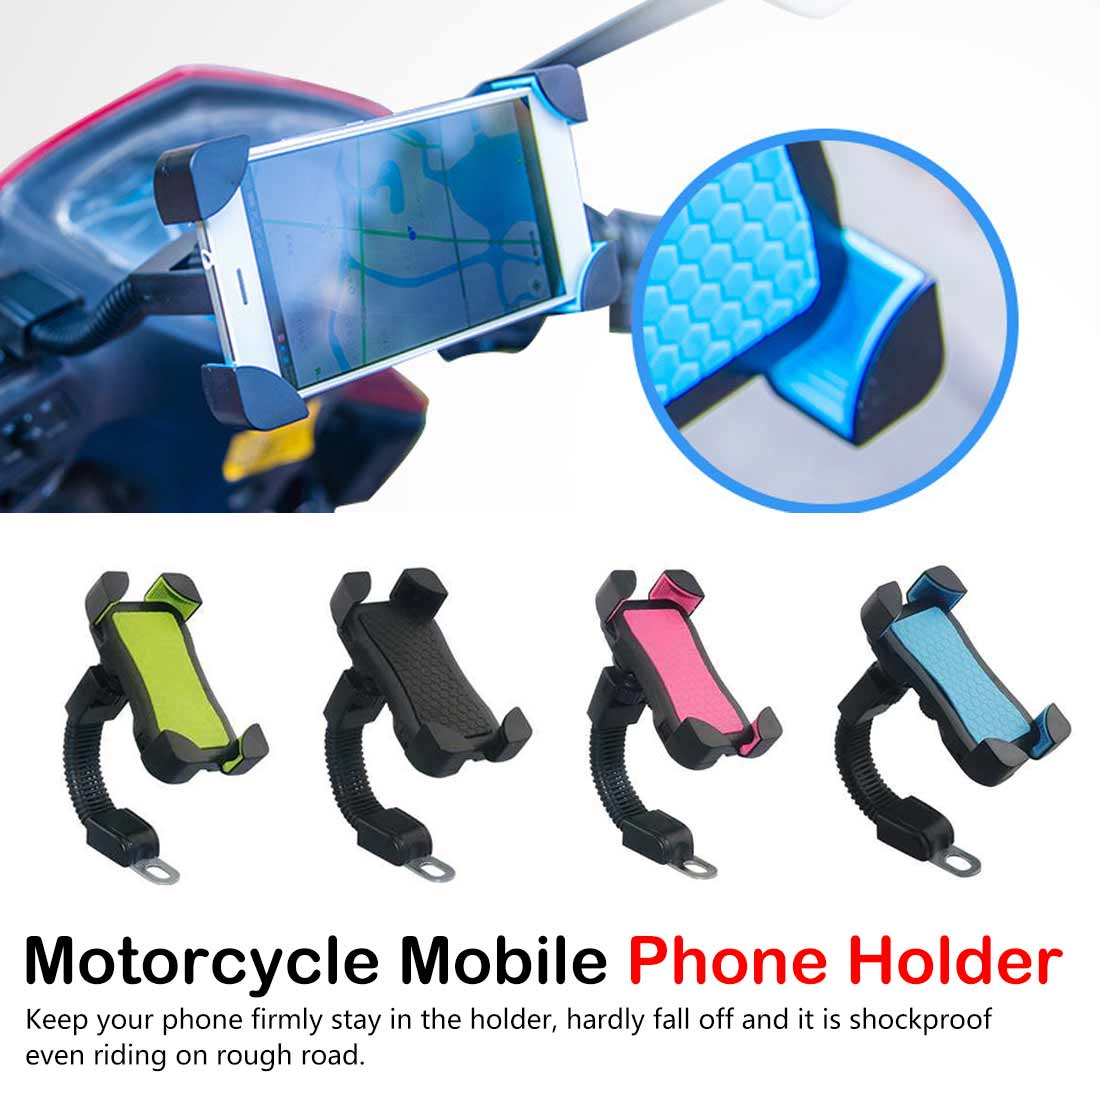 Rear View Mirror Moto mobile Support Motorcycle Mobile Phone Holder Stand Motorcycle Phone Holder(China)